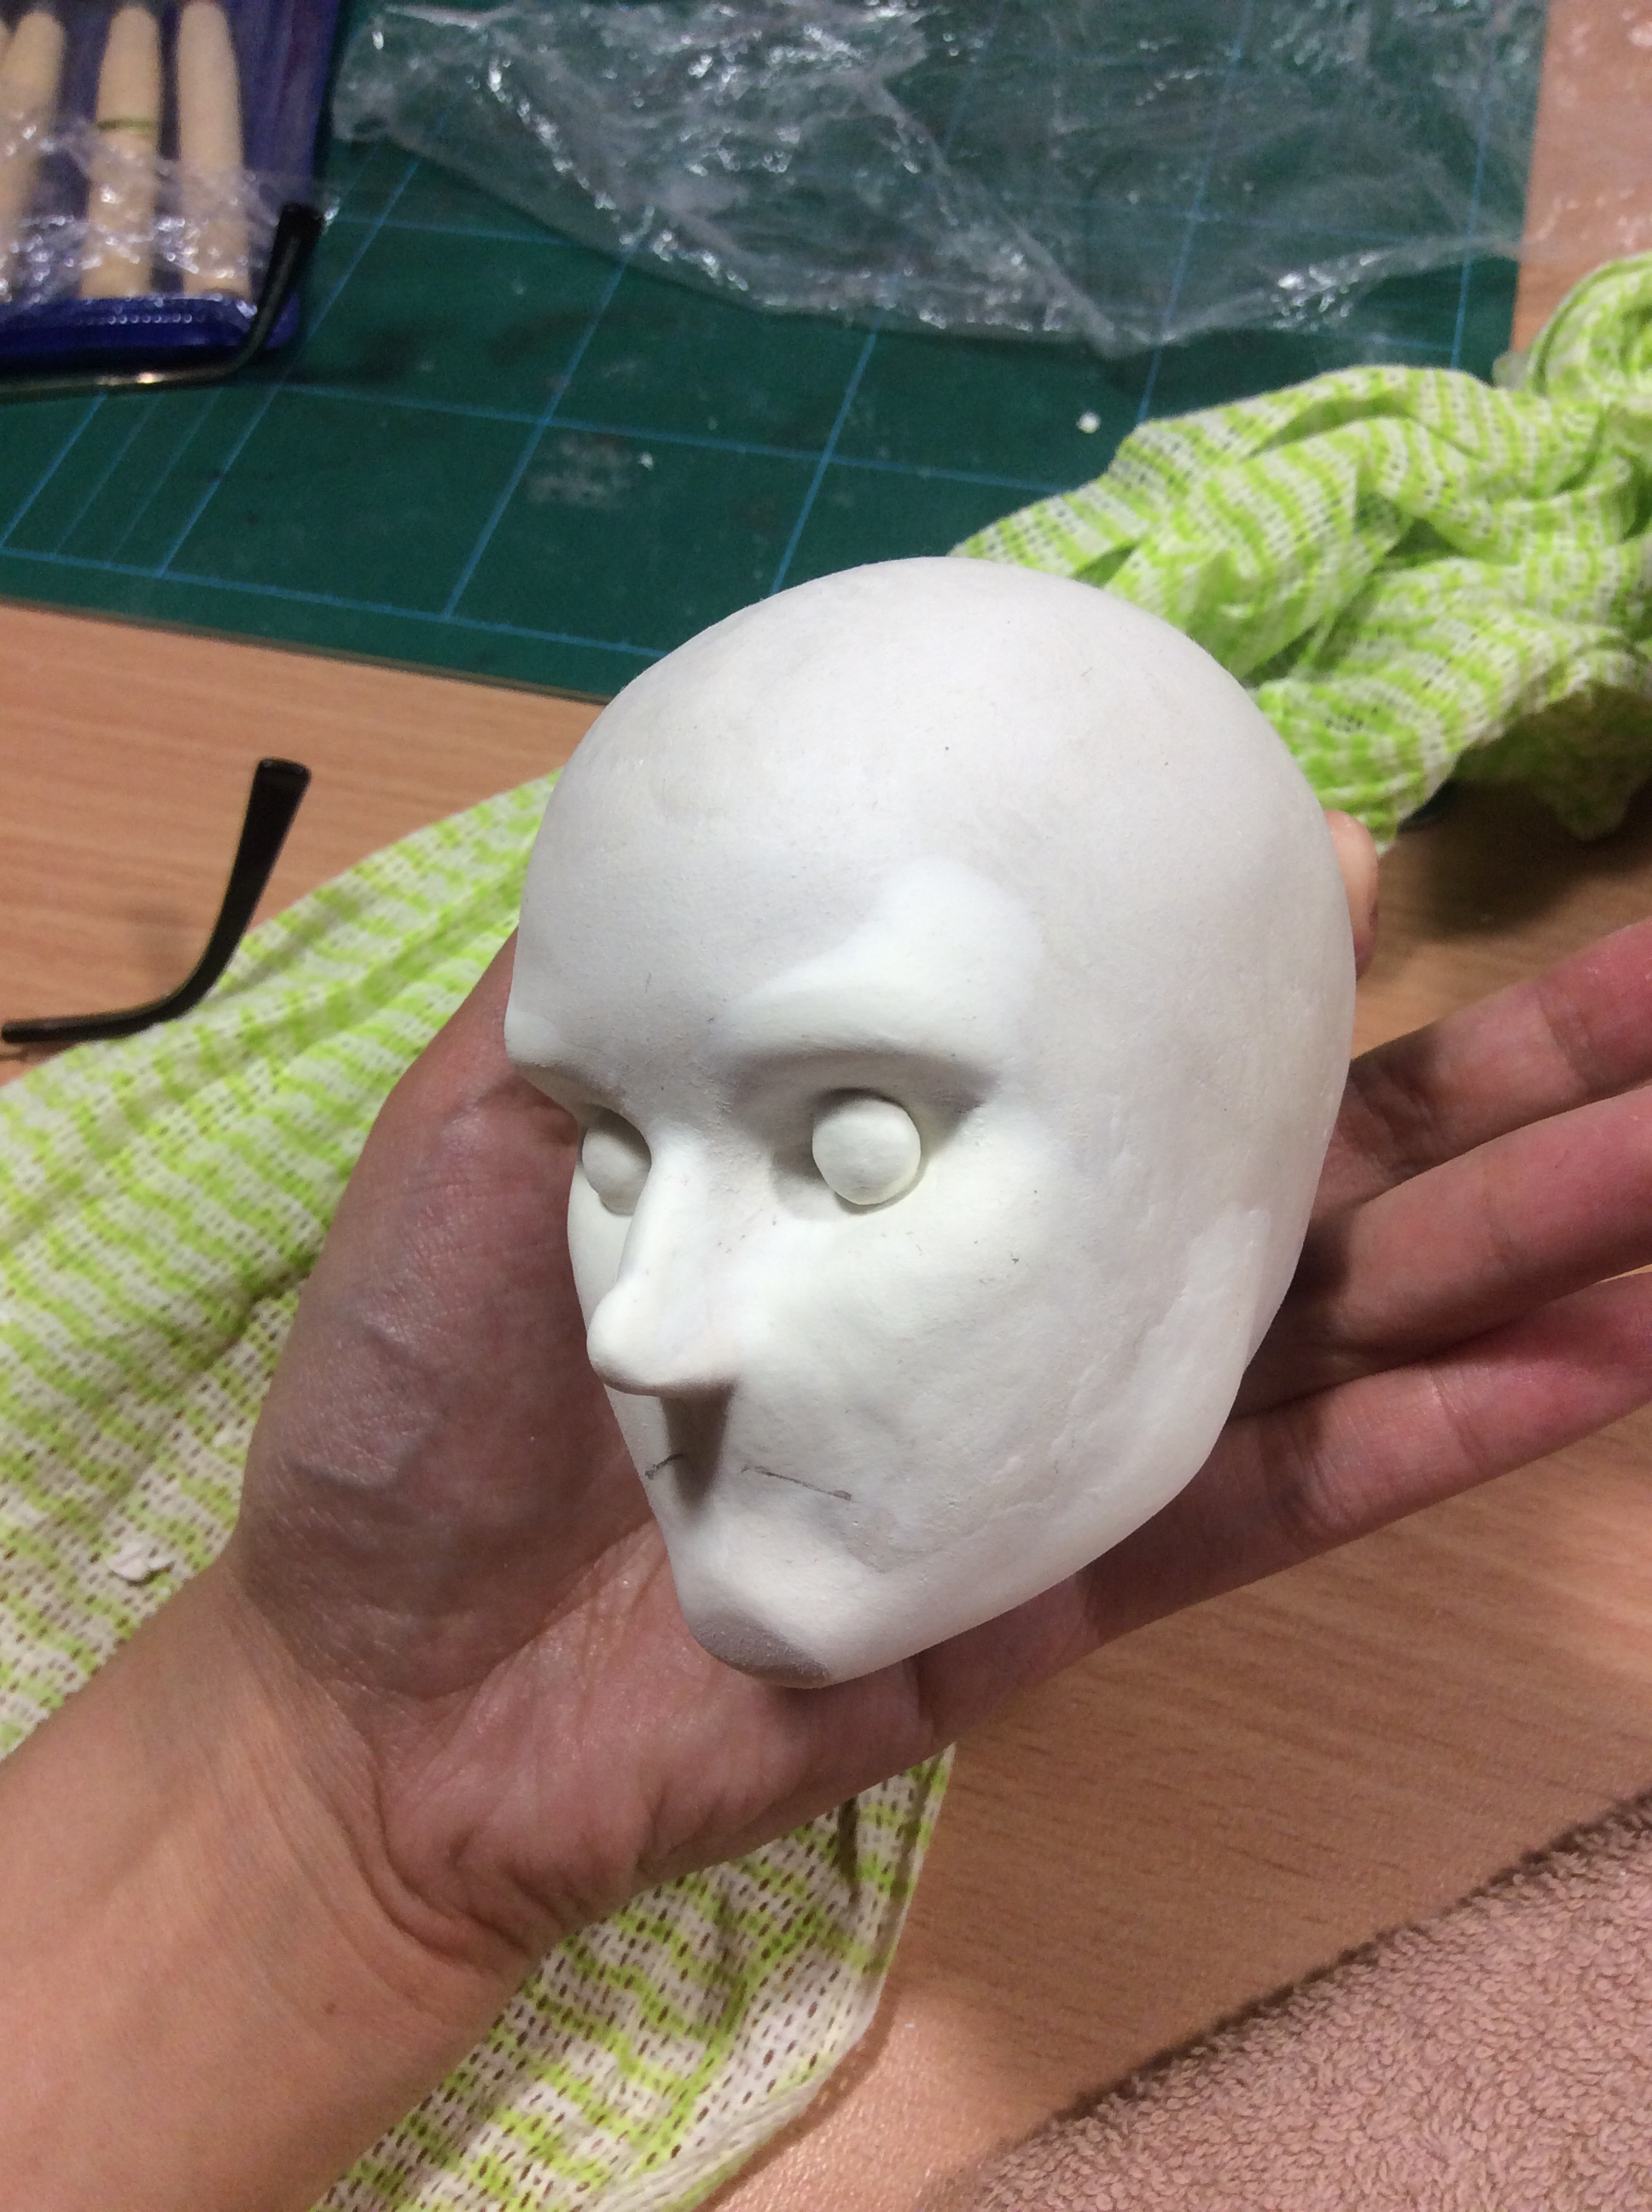 jemse---my-first-doll-head-making-progress-diary-part-2_31602473573_o